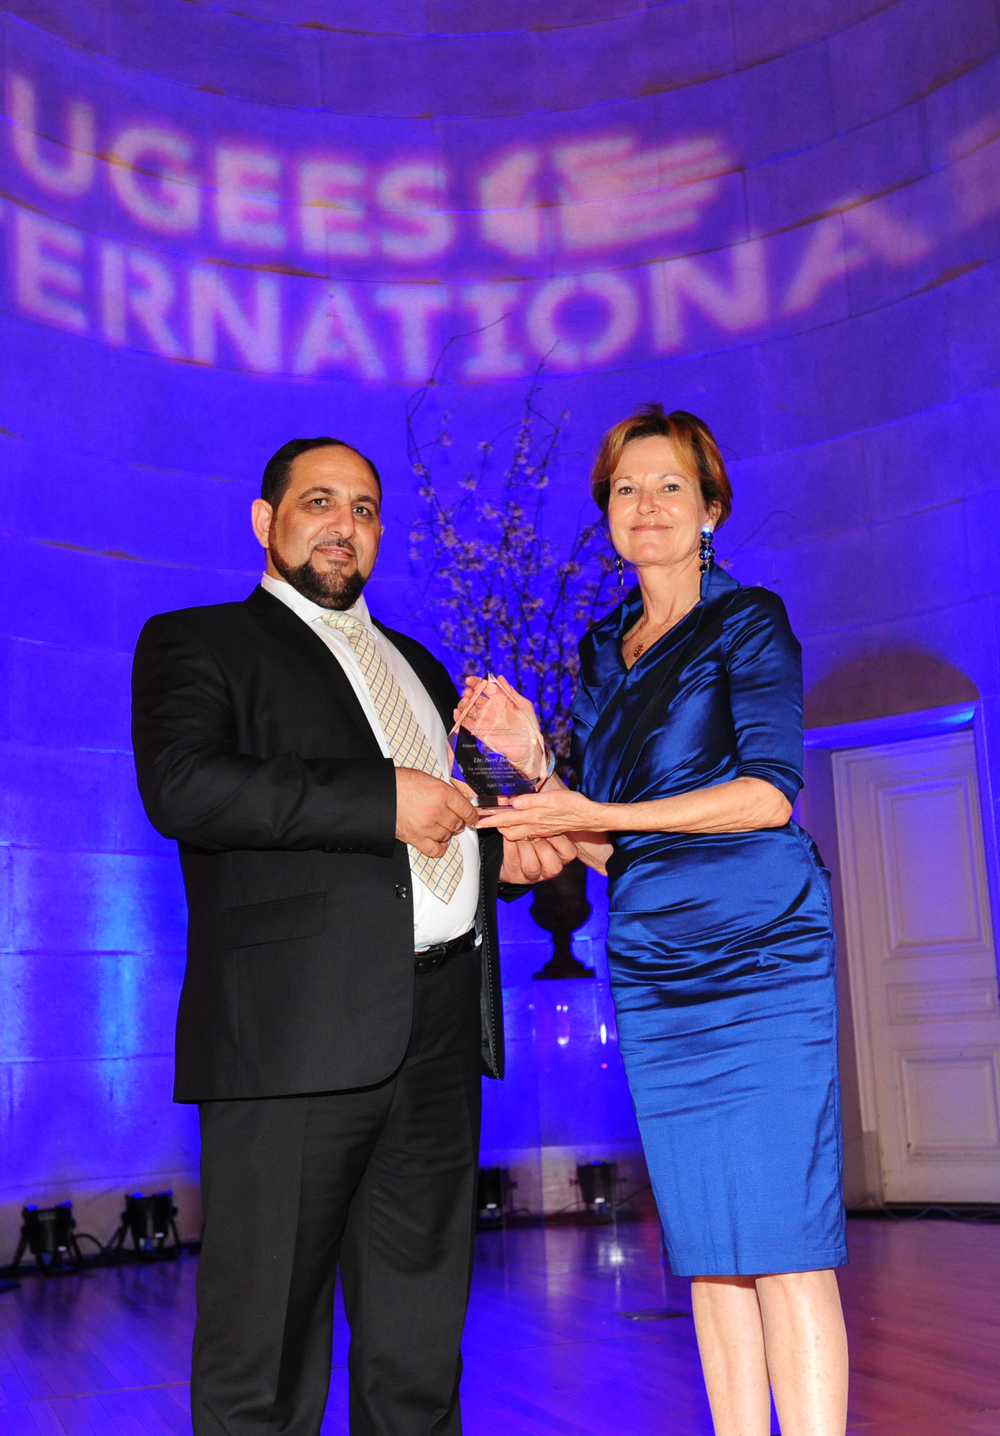 Dr. Seri Bakkar receives Richard C. Holbrooke Leadership Award from Kati Marton